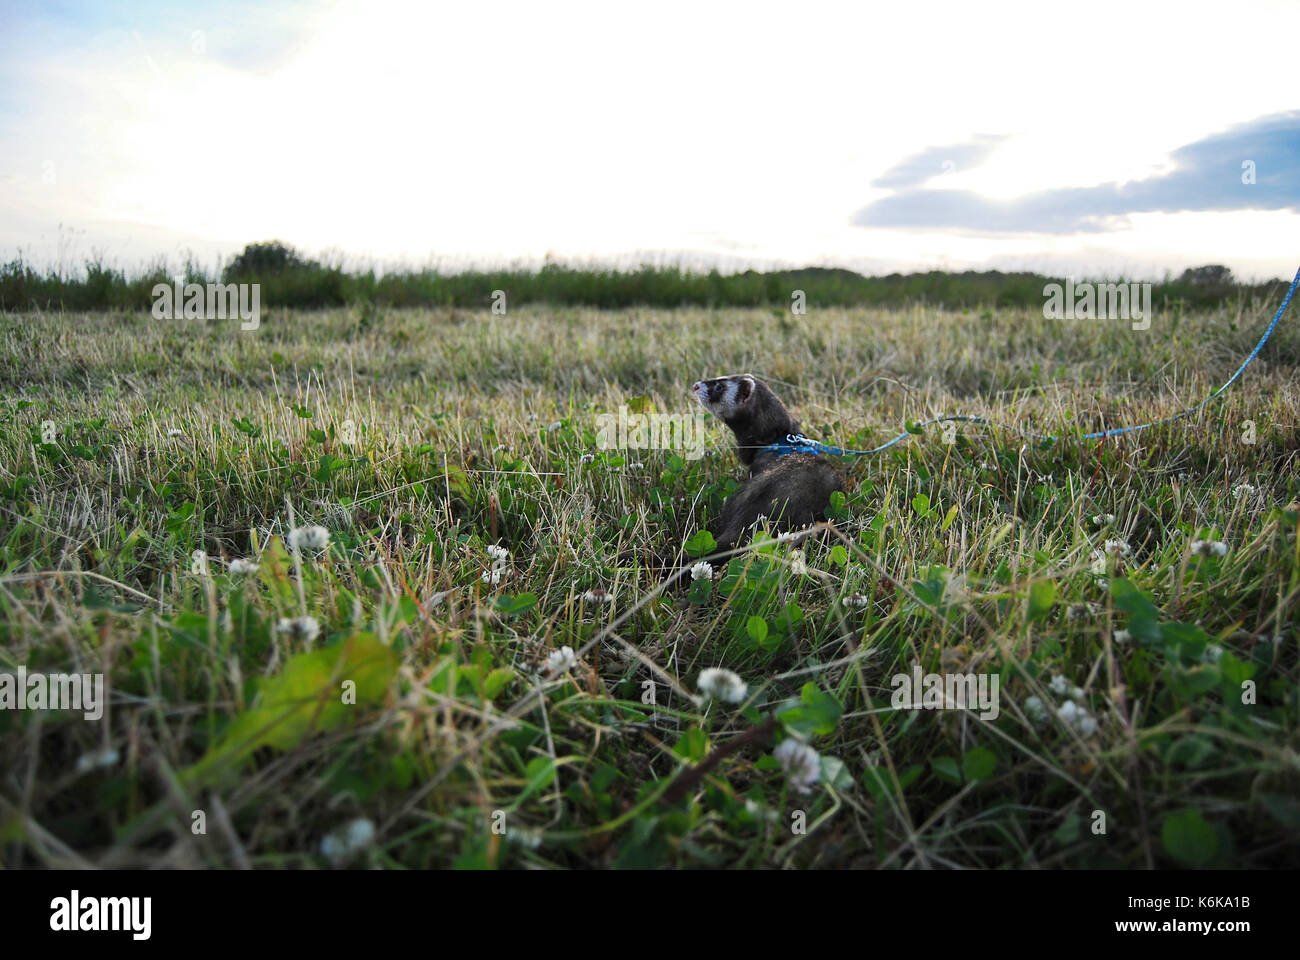 Sable ferret in a Latvian (Baltic) meadow - Stock Image